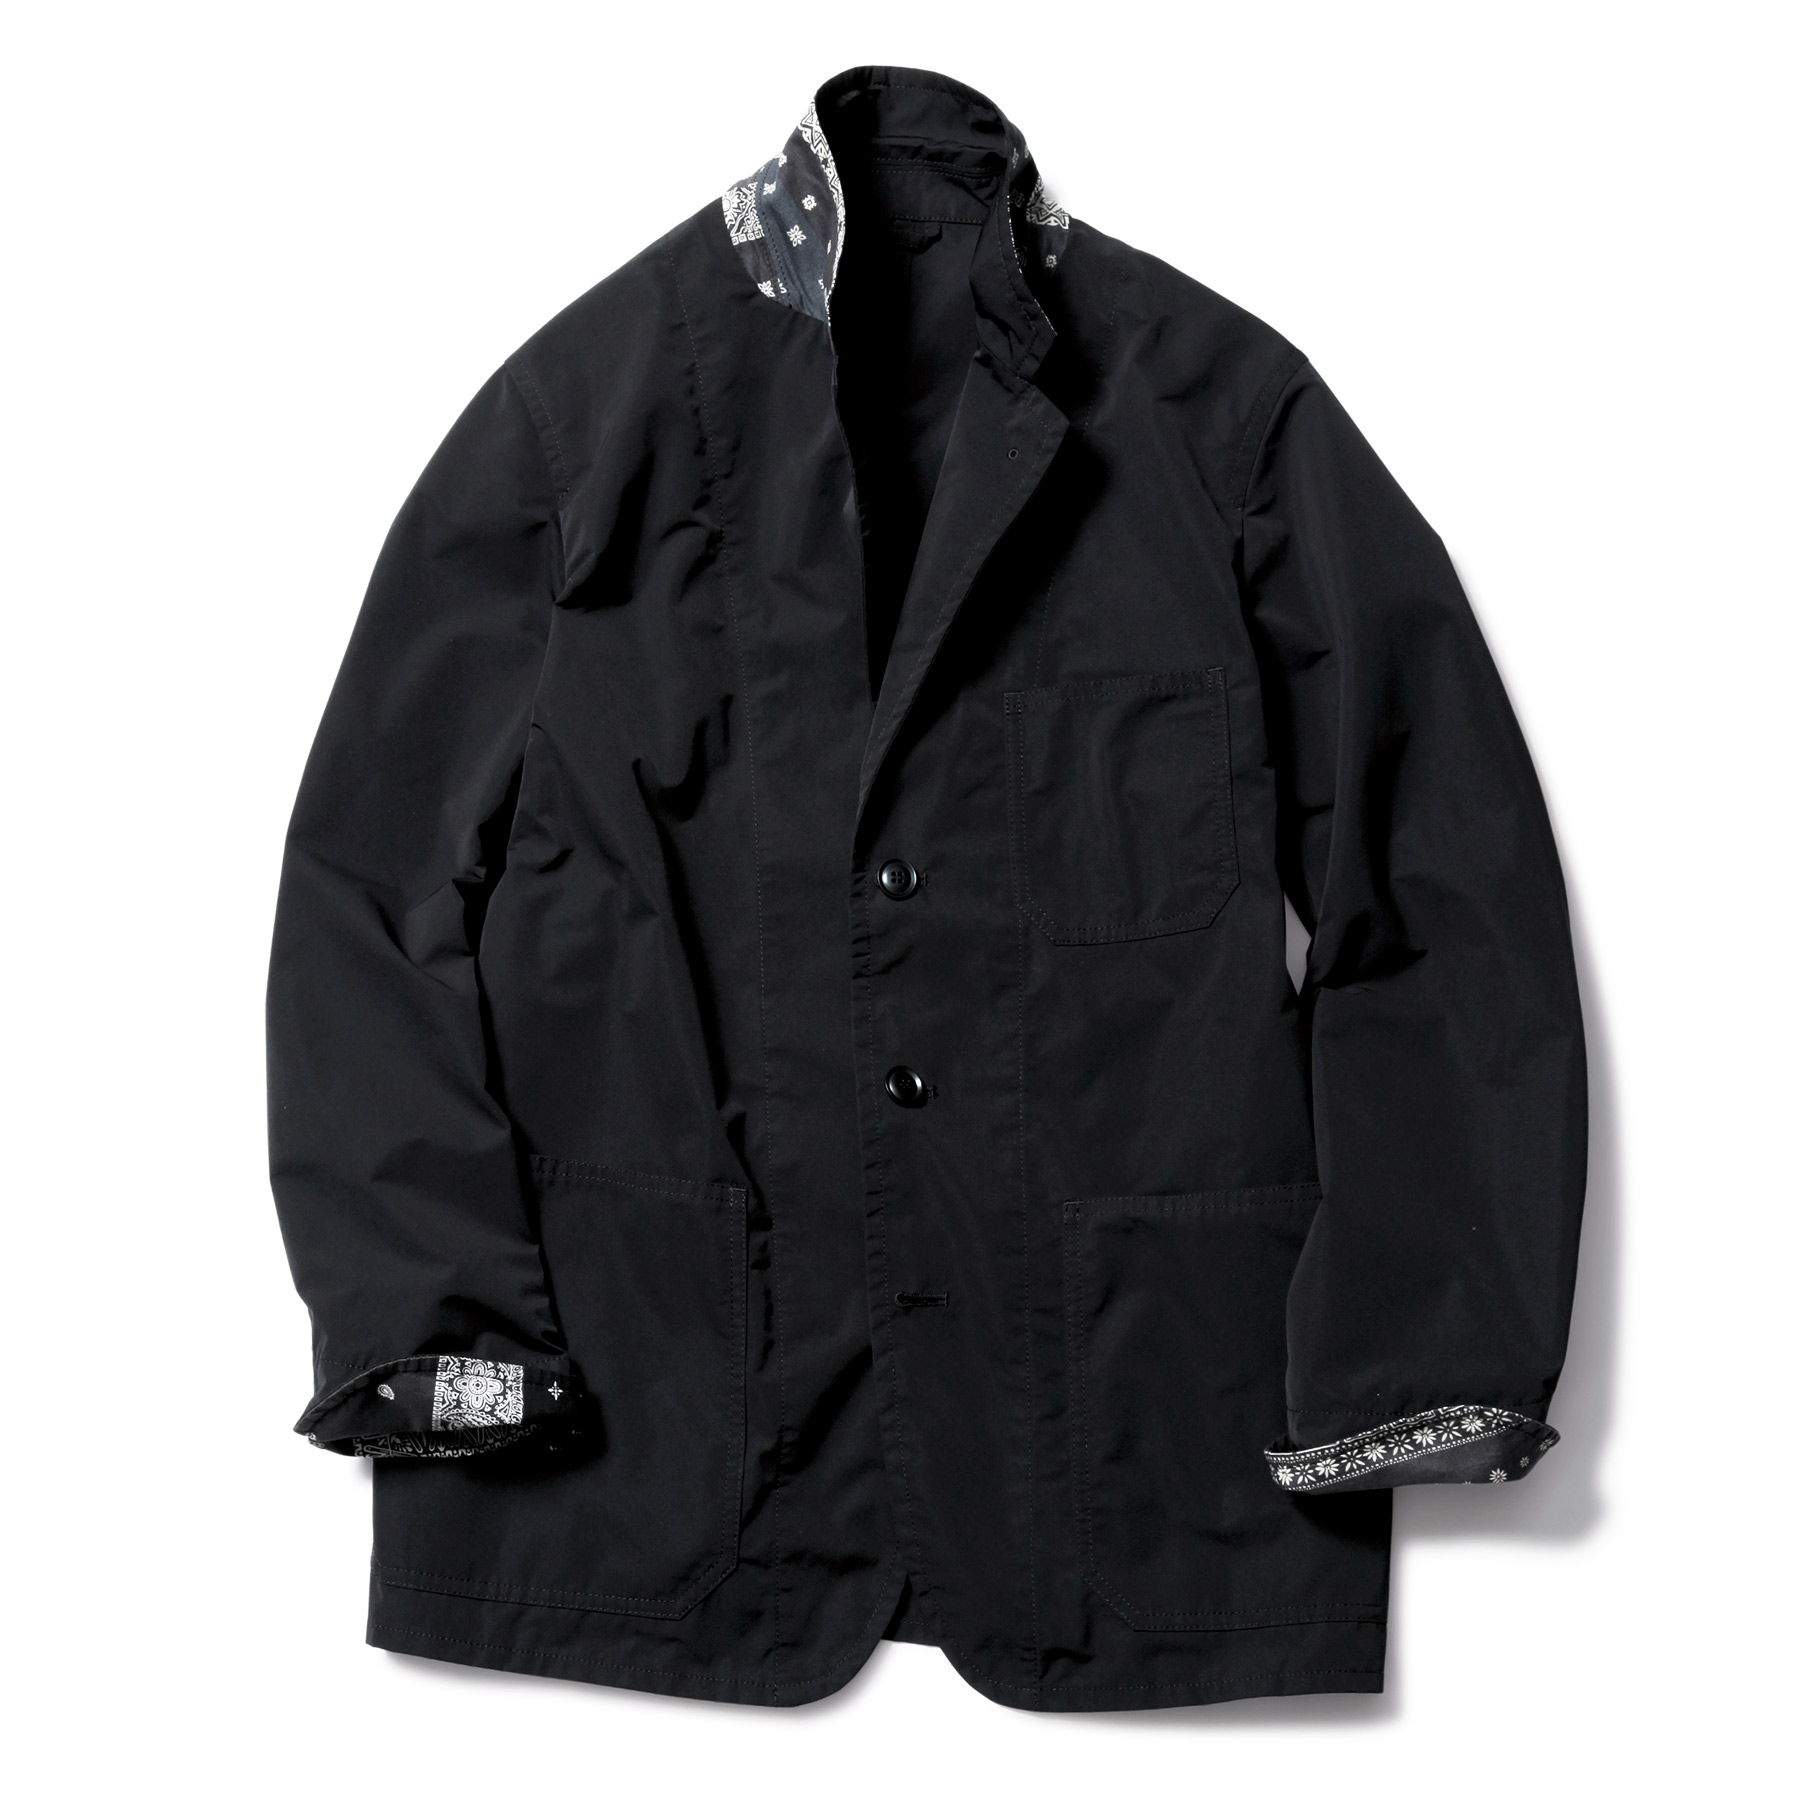 SOPHNET. / 3 BUTTON JACKET by SOLOTEX -BLACK